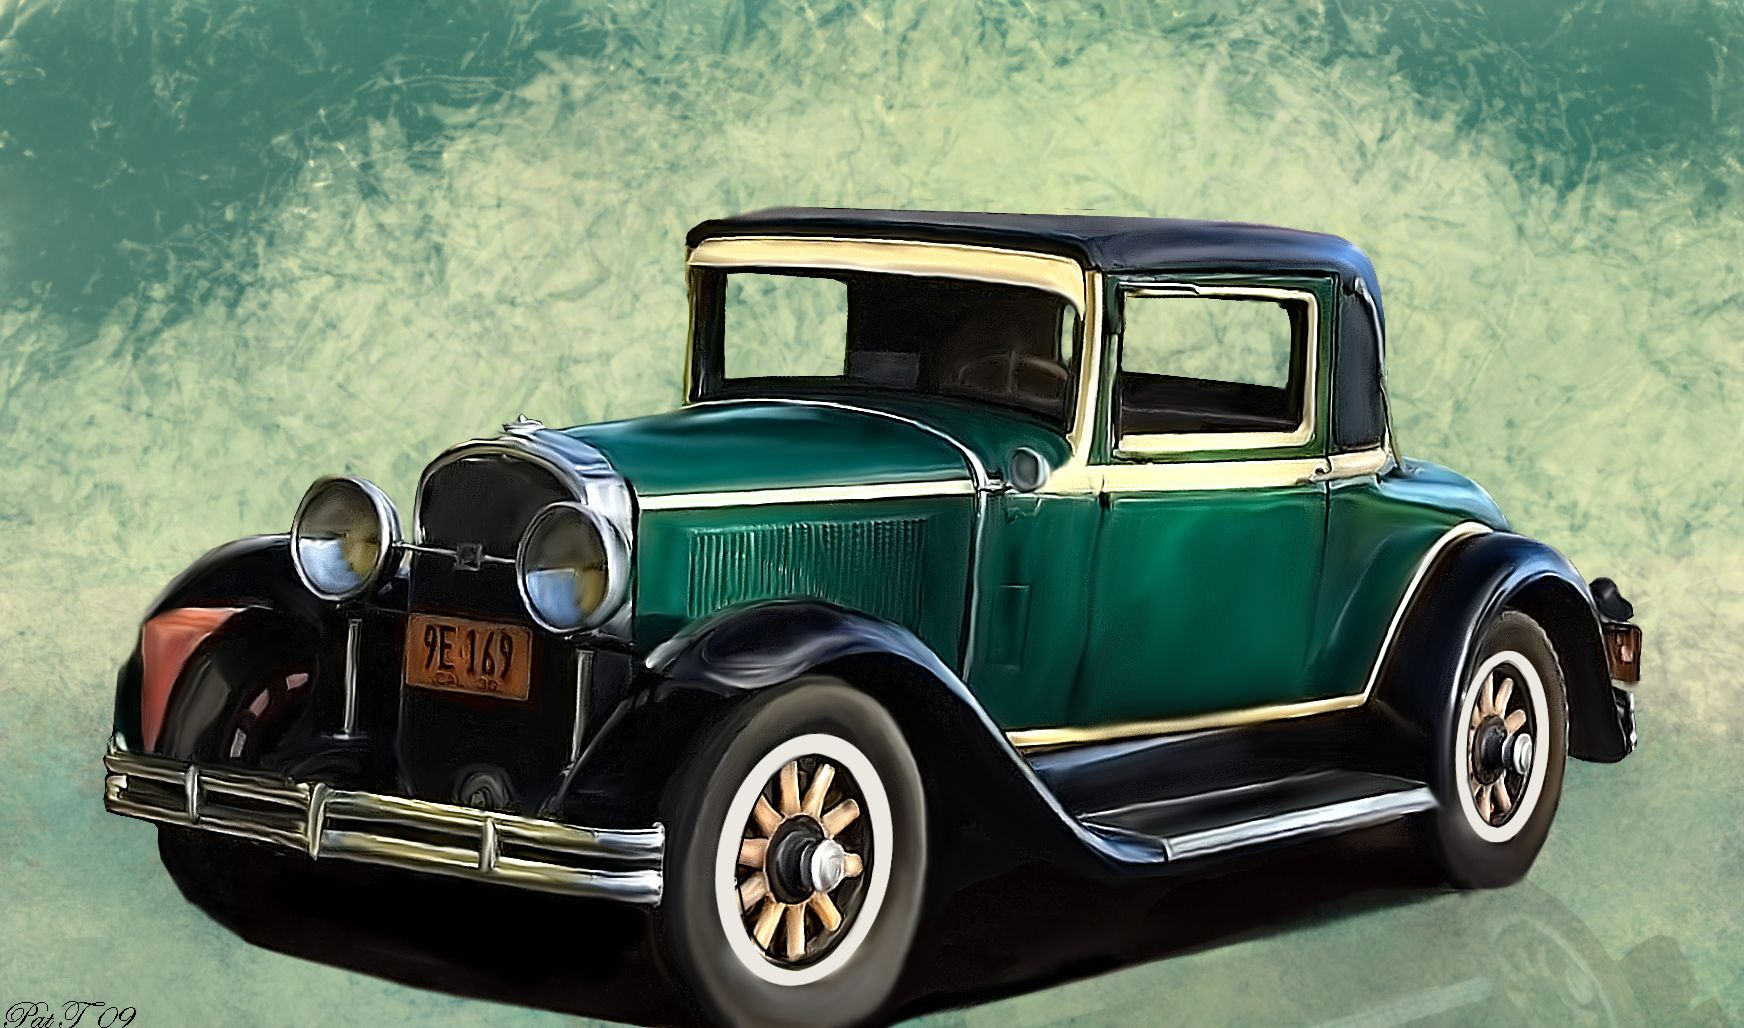 photos of old Autos | if available) | old family photos ...